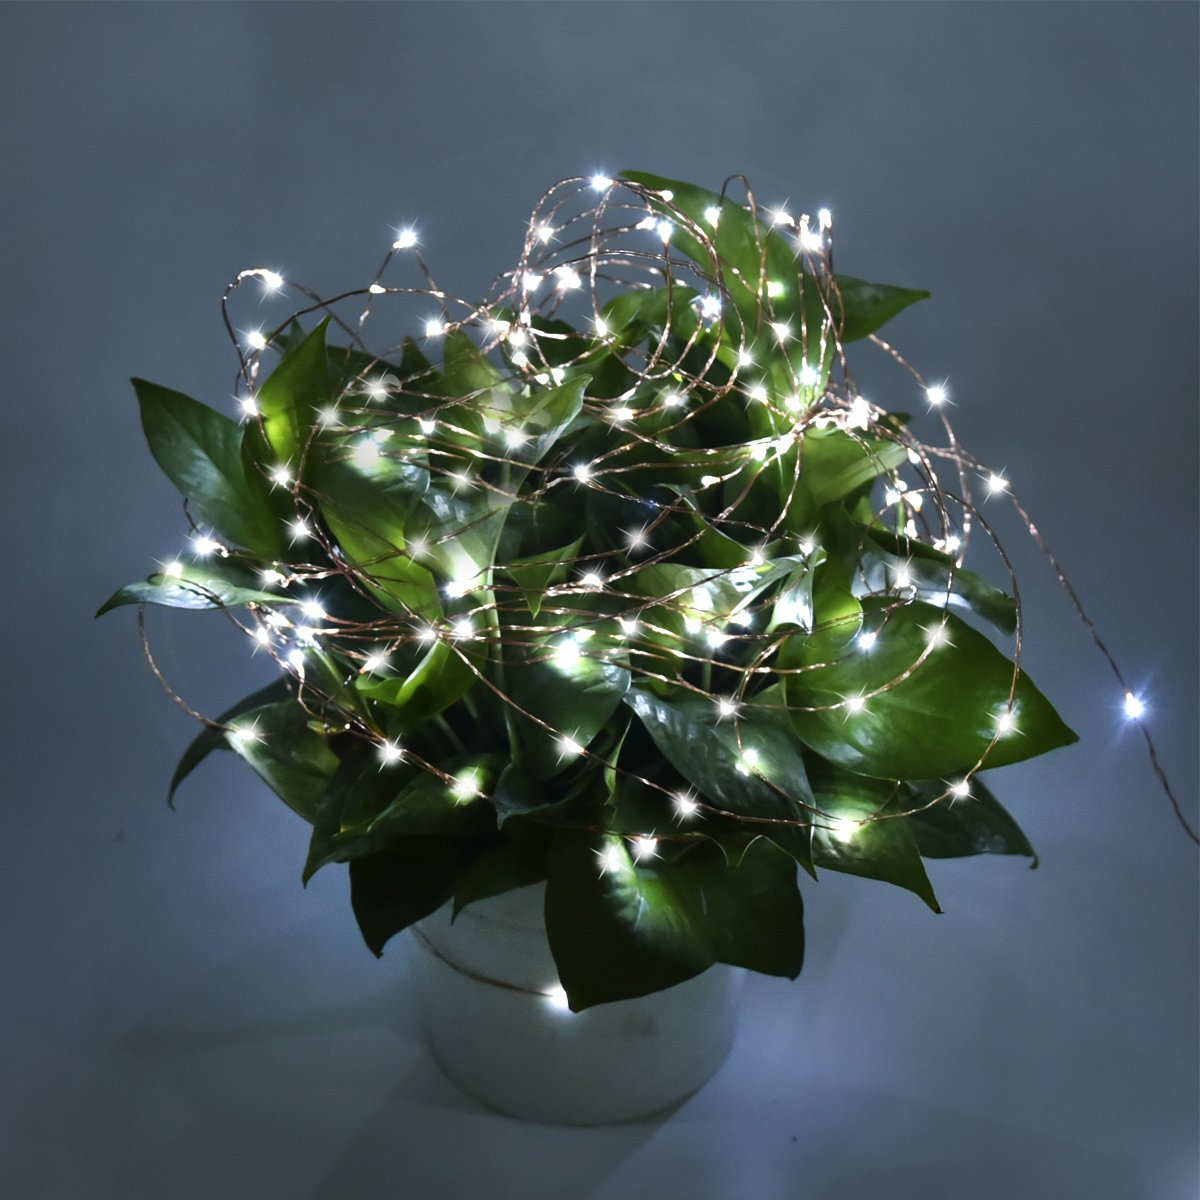 Solarmks 150 LED Bendable Copper Wired Solar Powered Waterproof Starry String Lights with 8 Modes, White